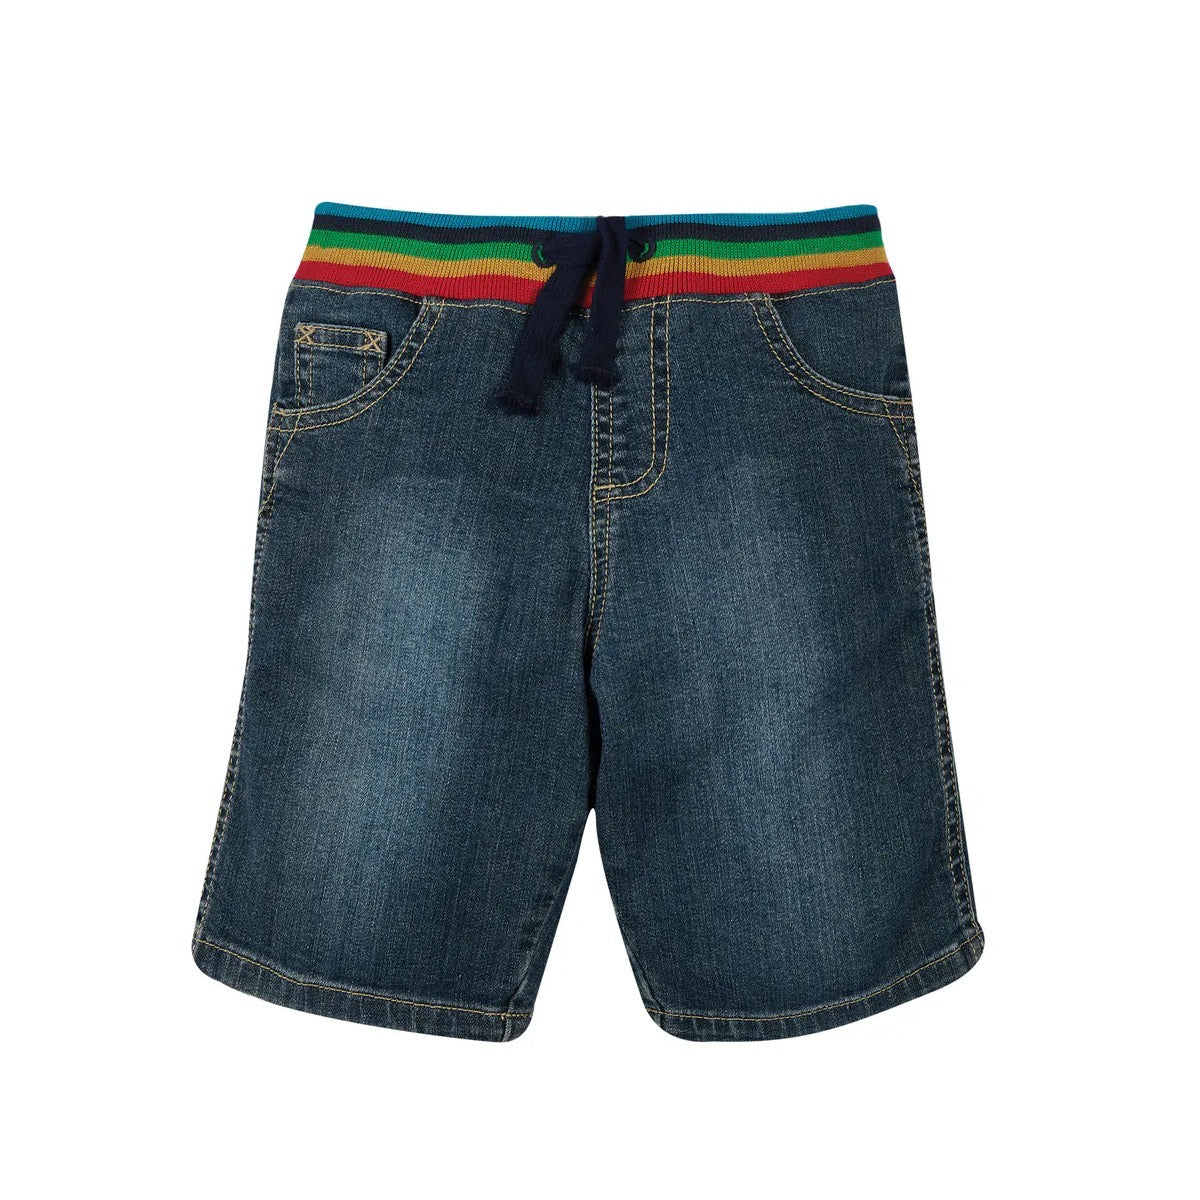 Frugi Dorian Denim Shorts Shs102mwd